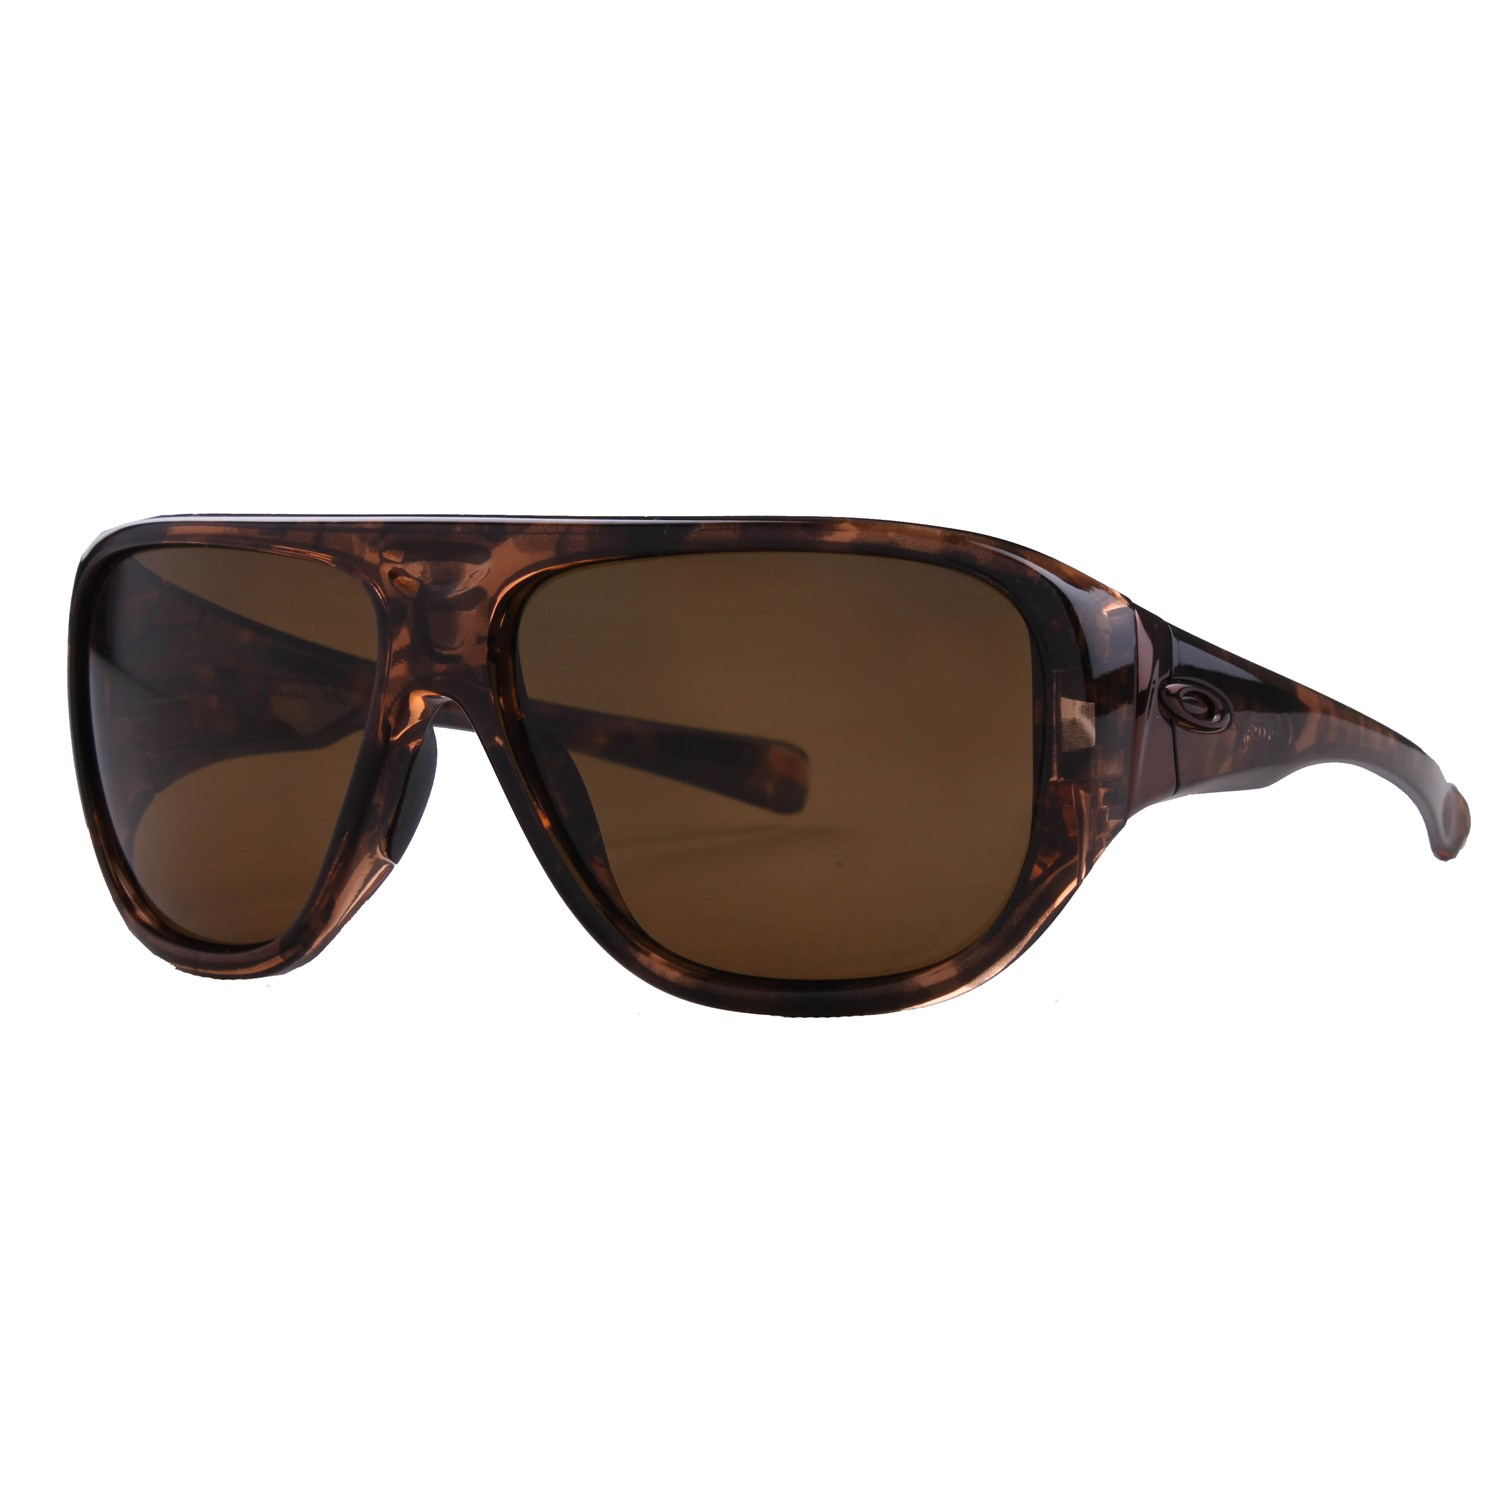 Fashion Metal Frame - Lightweight and Strong rectangular polarized sunglasses. Duduma Polarized Sports Sunglasses for Men Driving Baseball Running Cycling Fishing Golf Tr90 Durable Frame. by Duduma. $ $ 21 99 Prime. FREE Shipping on eligible orders. Some colors are Prime eligible.